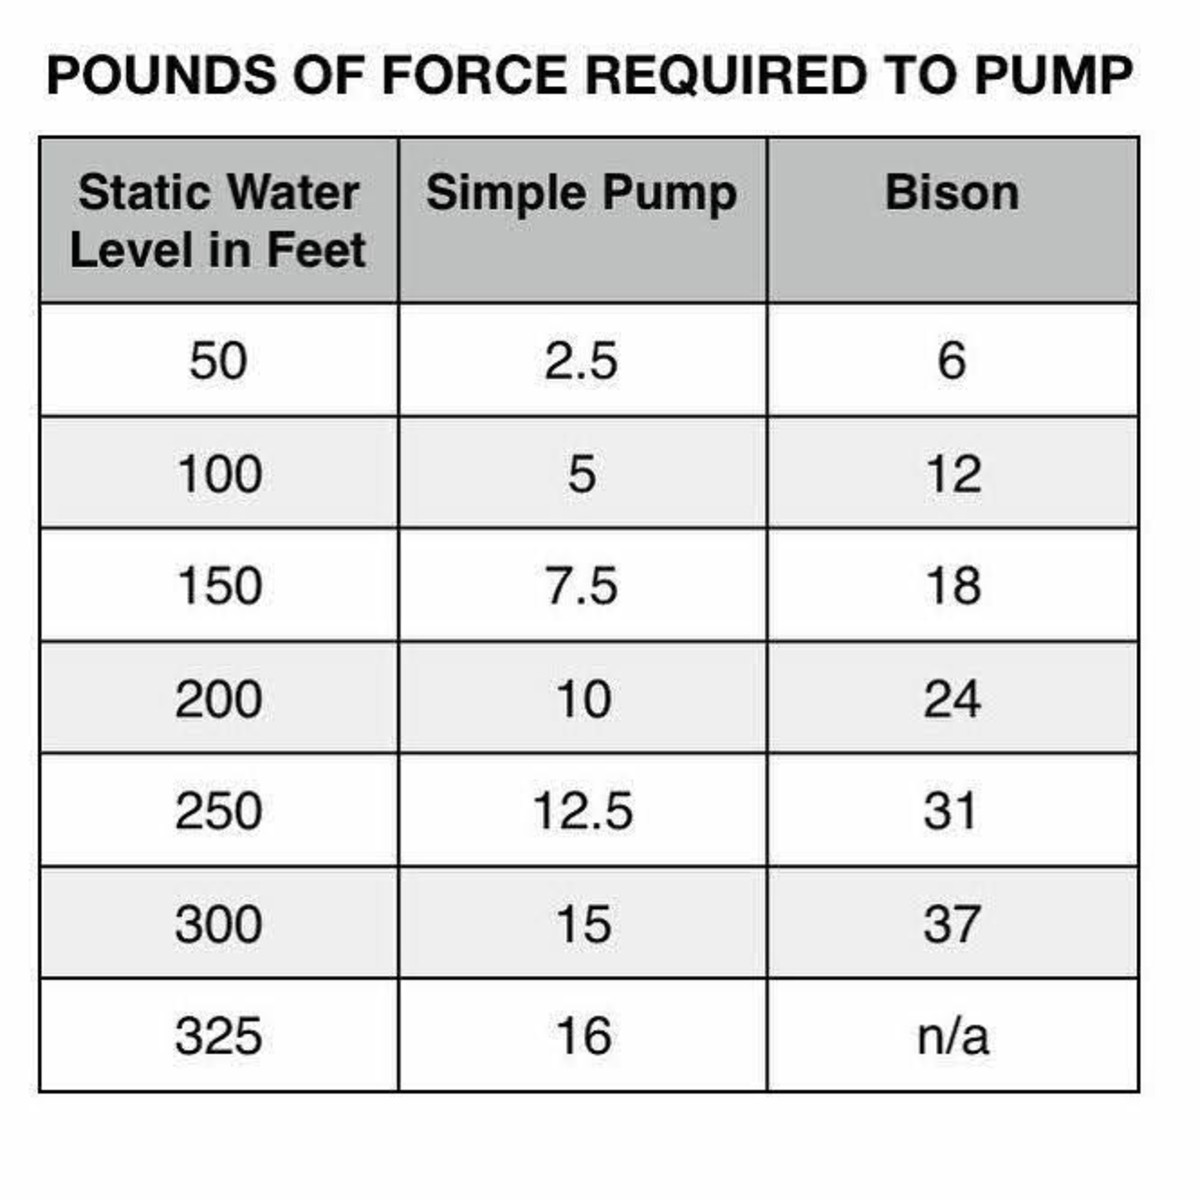 The figures on the far right refer to the specs for a heavy-duty Bison brand pump (with which I have no experience). Averages figured for other brands are given in the center column.